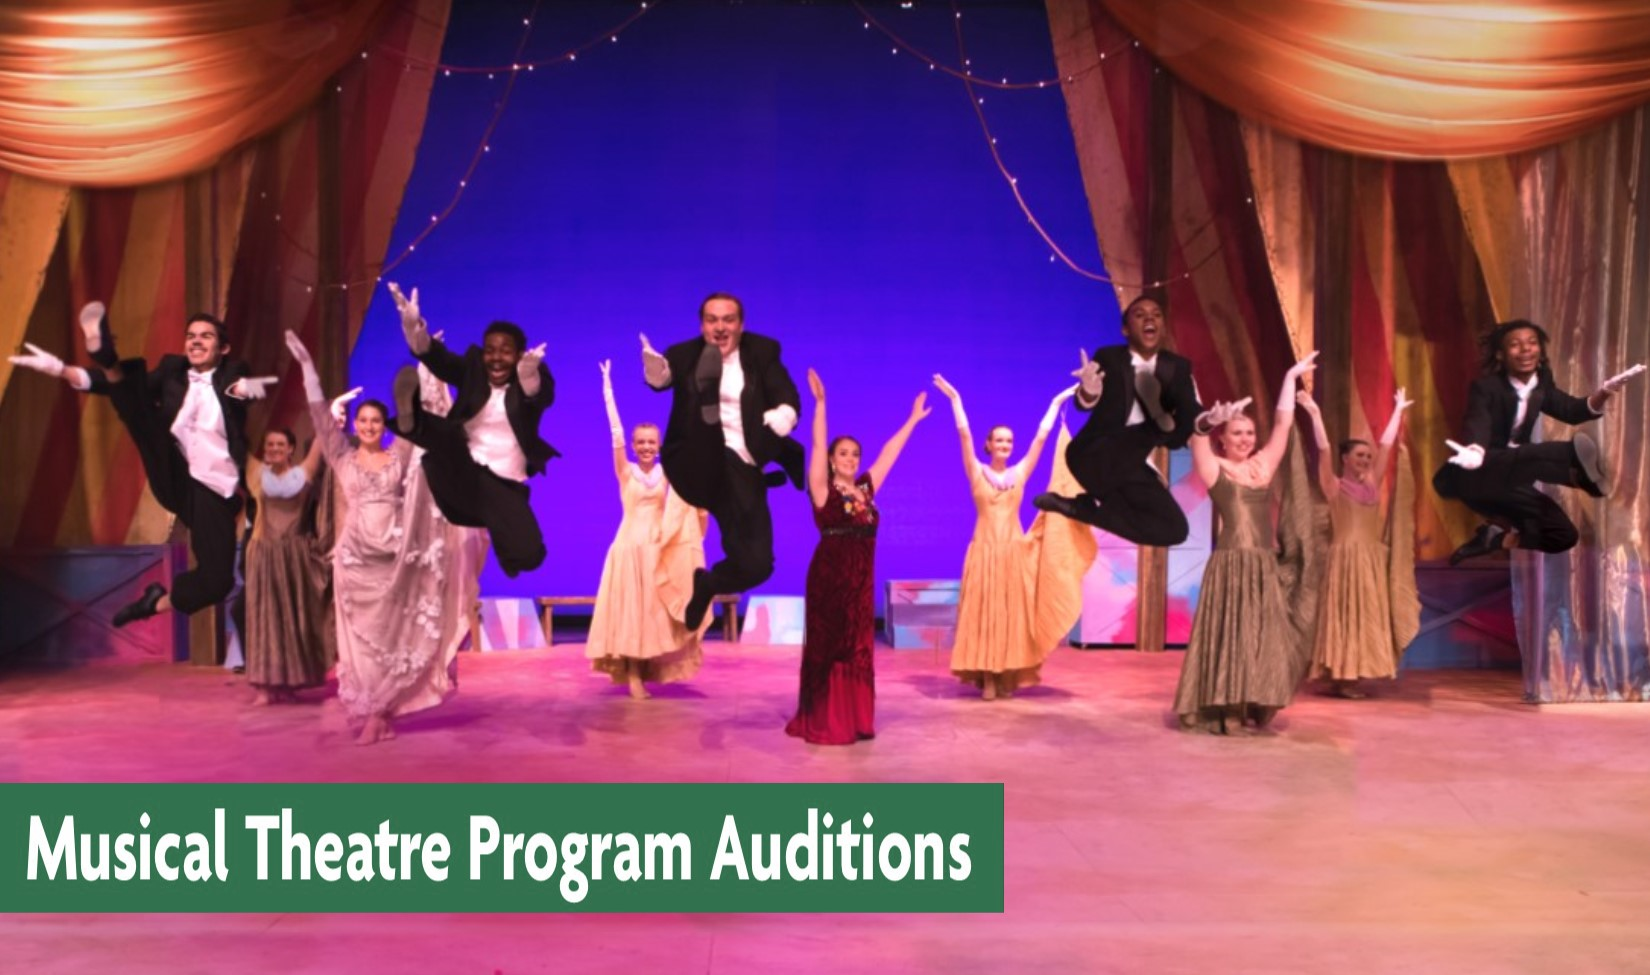 auditions begin this fall